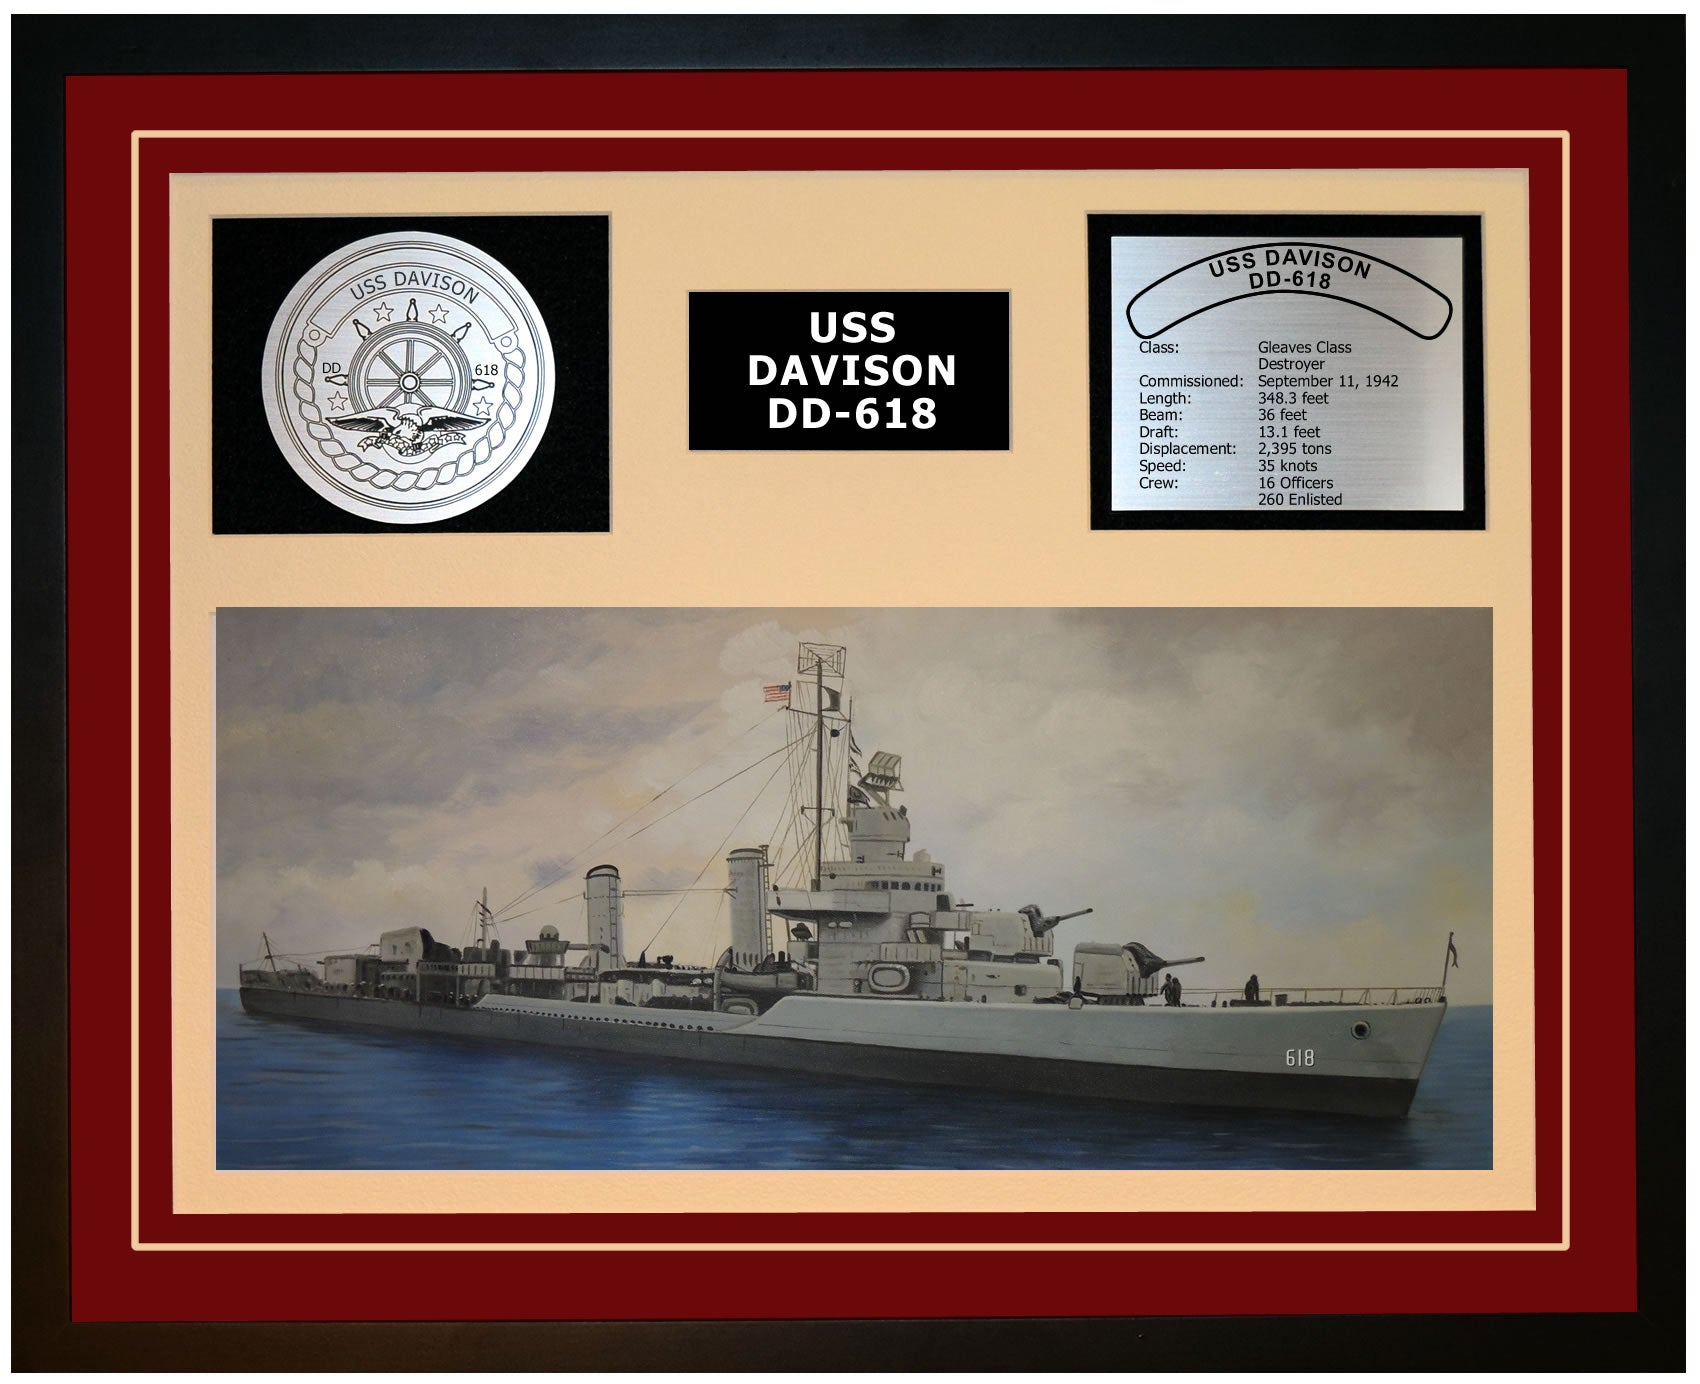 USS DAVISON DD-618 Framed Navy Ship Display Burgundy